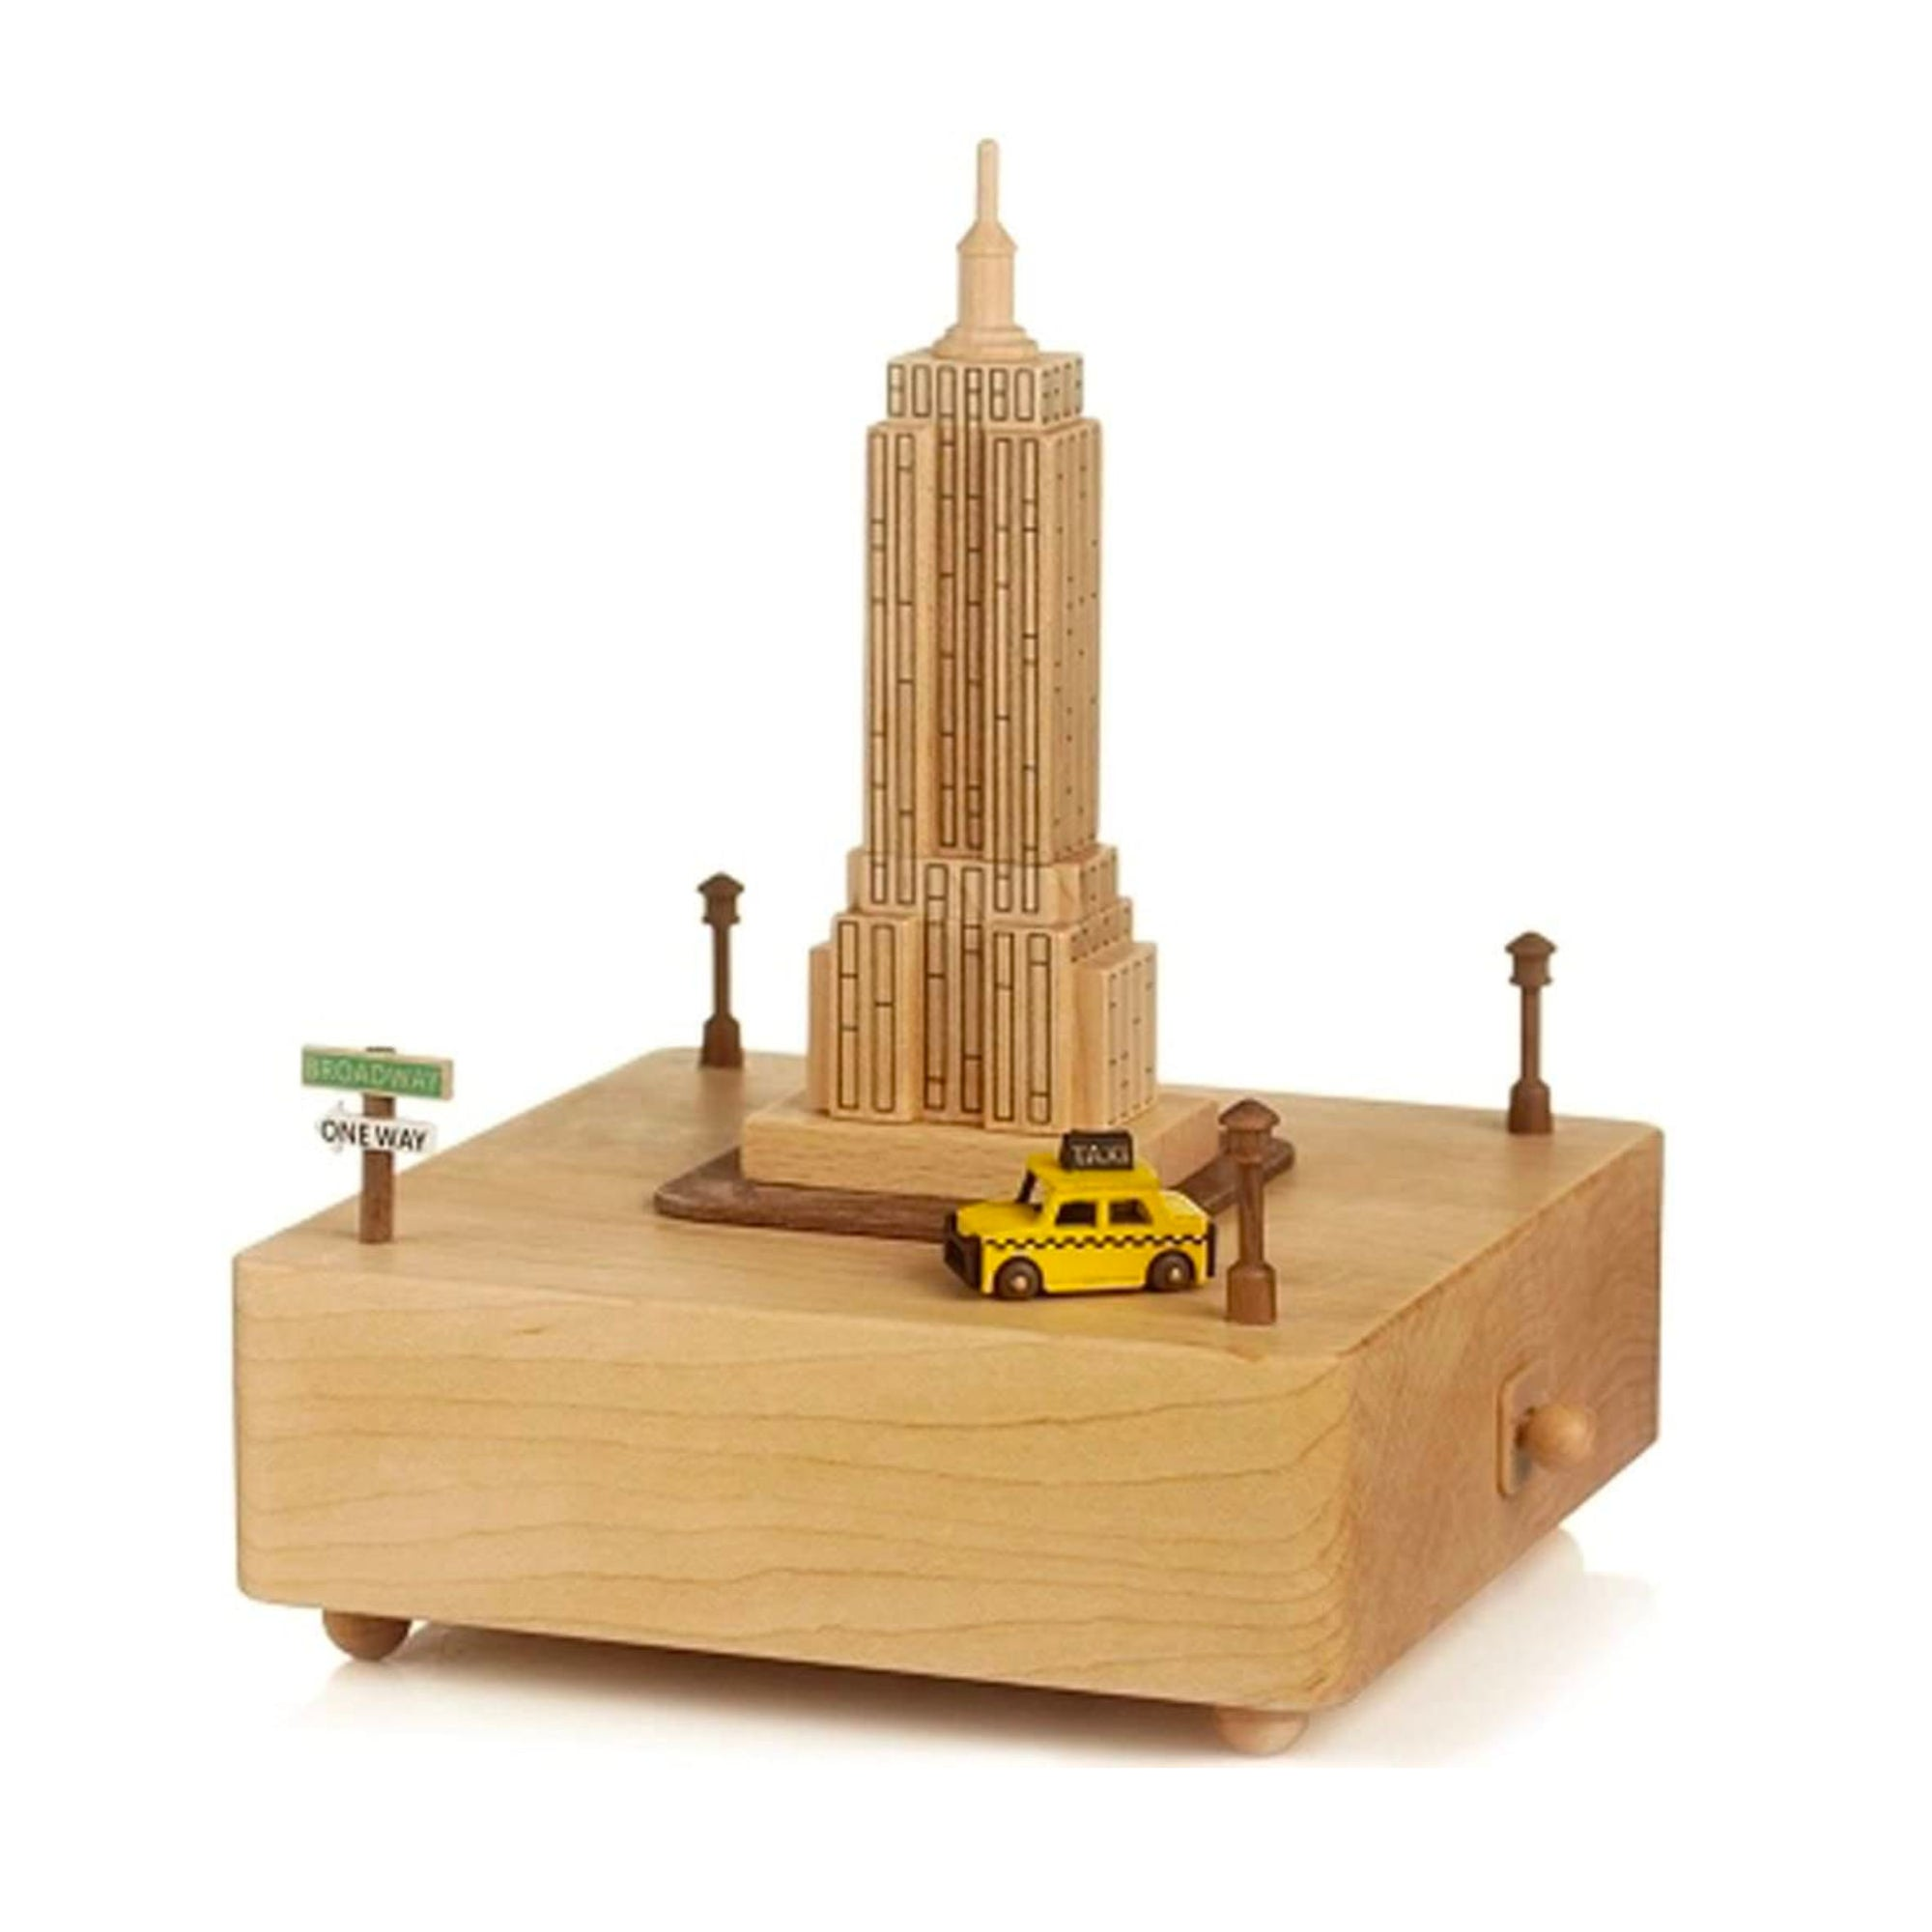 Wooderful Life wooden music box, New York City